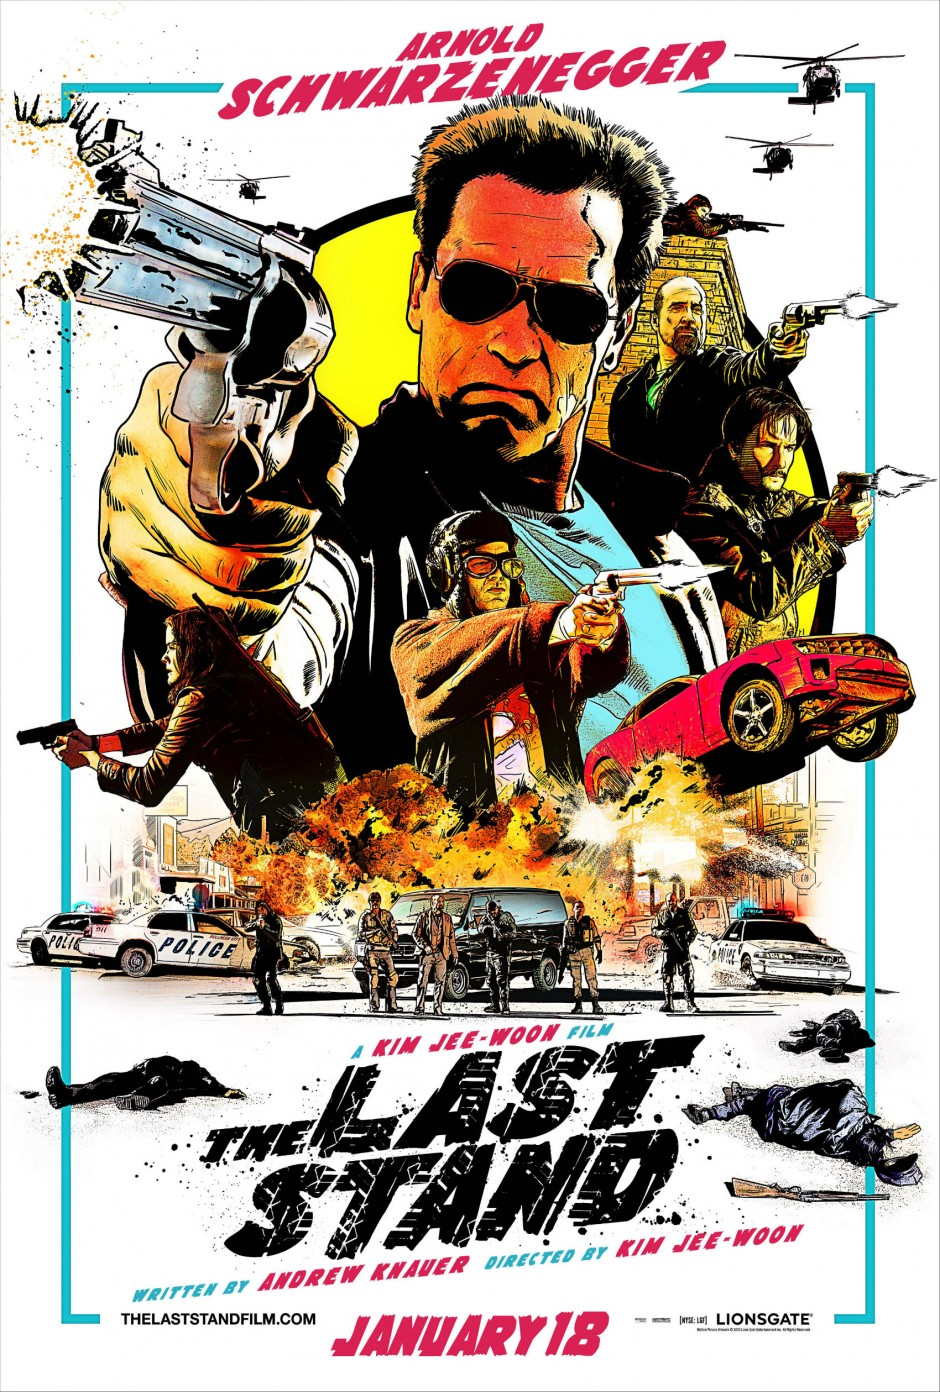 The Last Stand 2013 movie